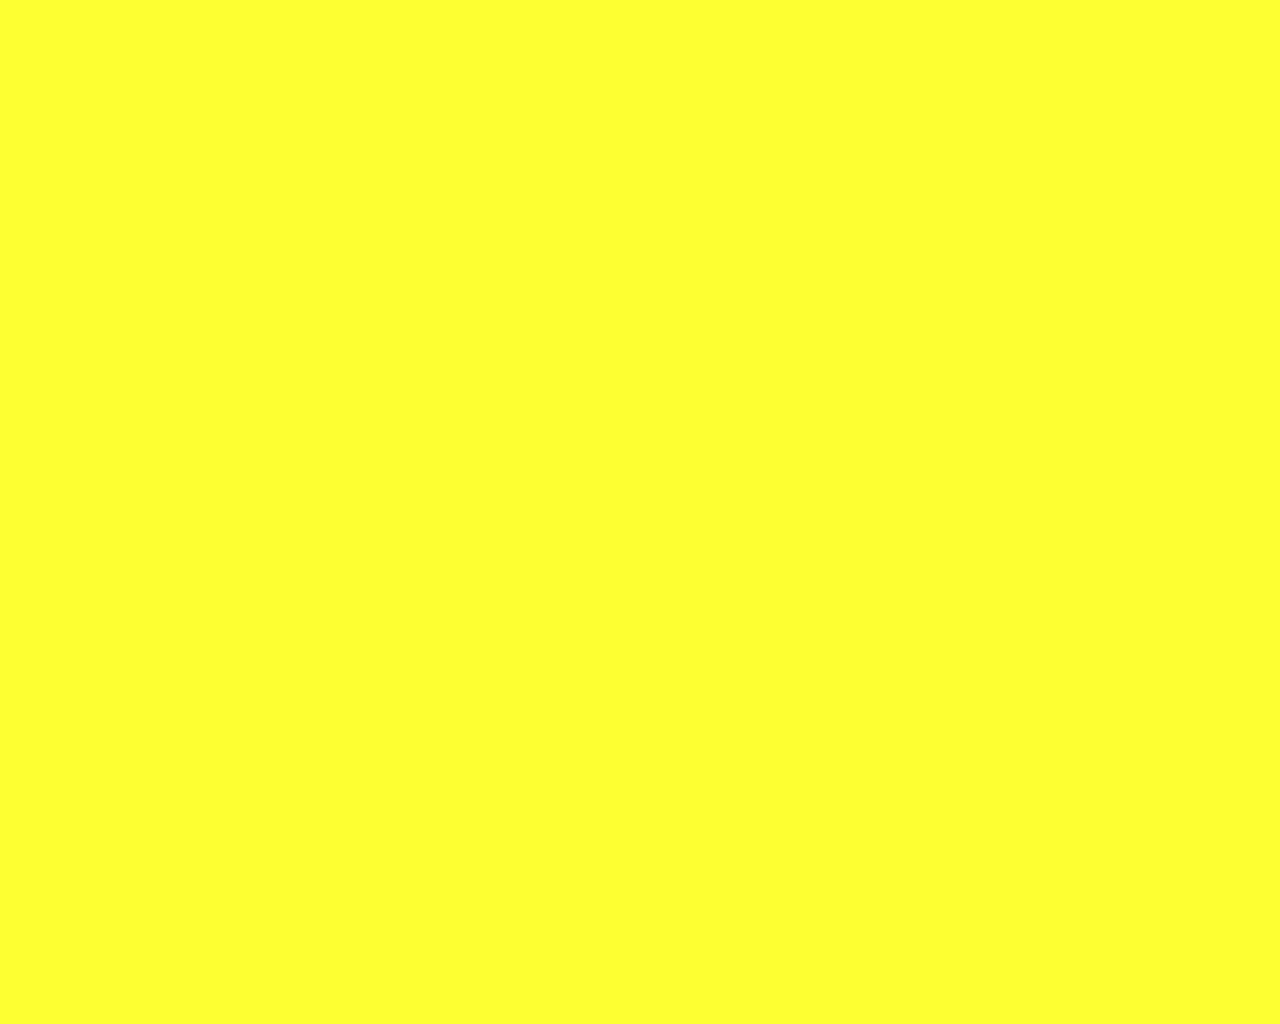 1280x1024 Daffodil Solid Color Background